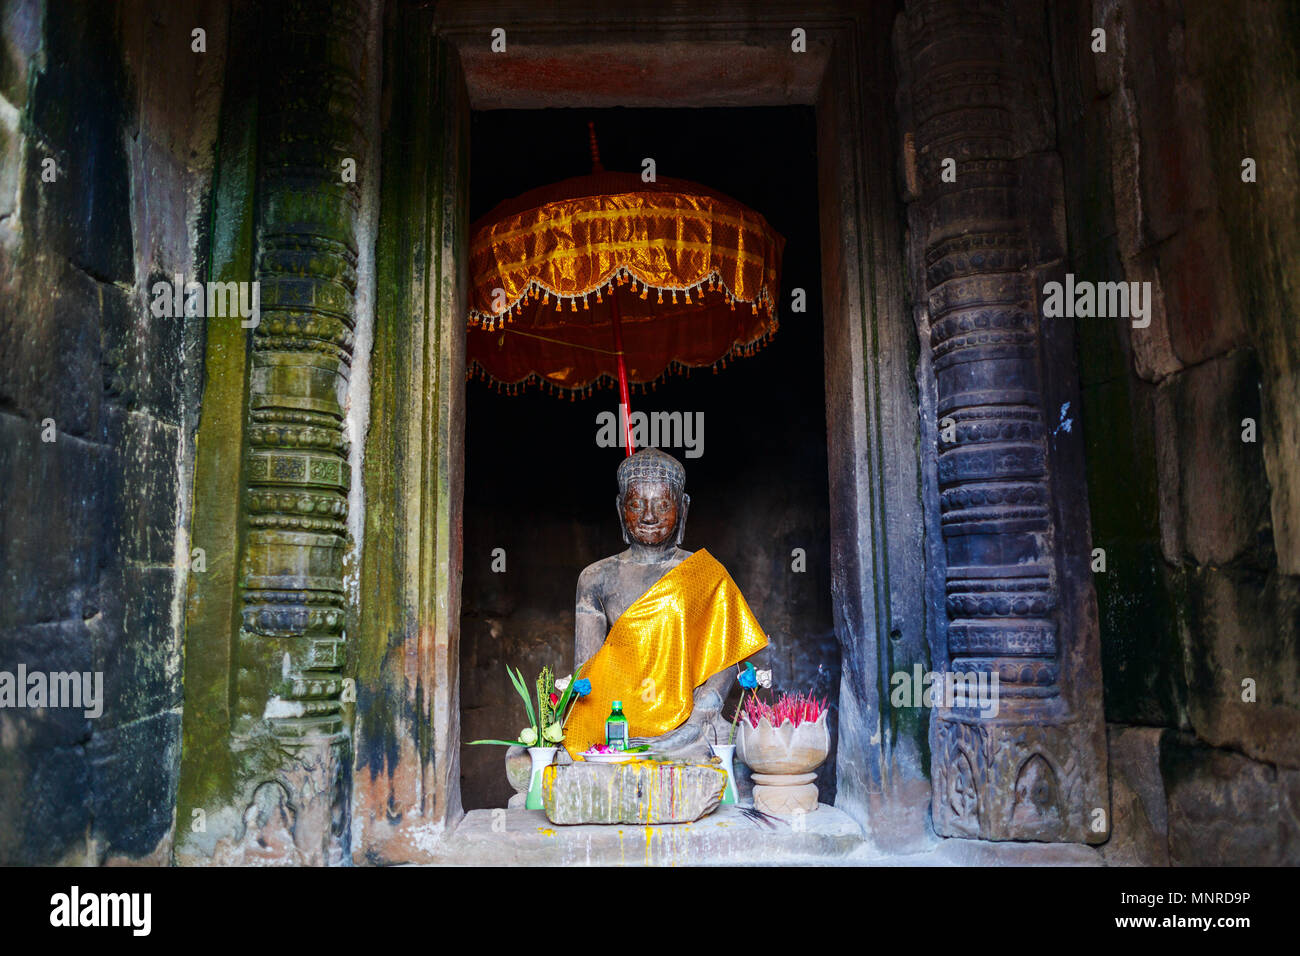 Buddha statue in Angkor Archeological area in Cambodia - Stock Image